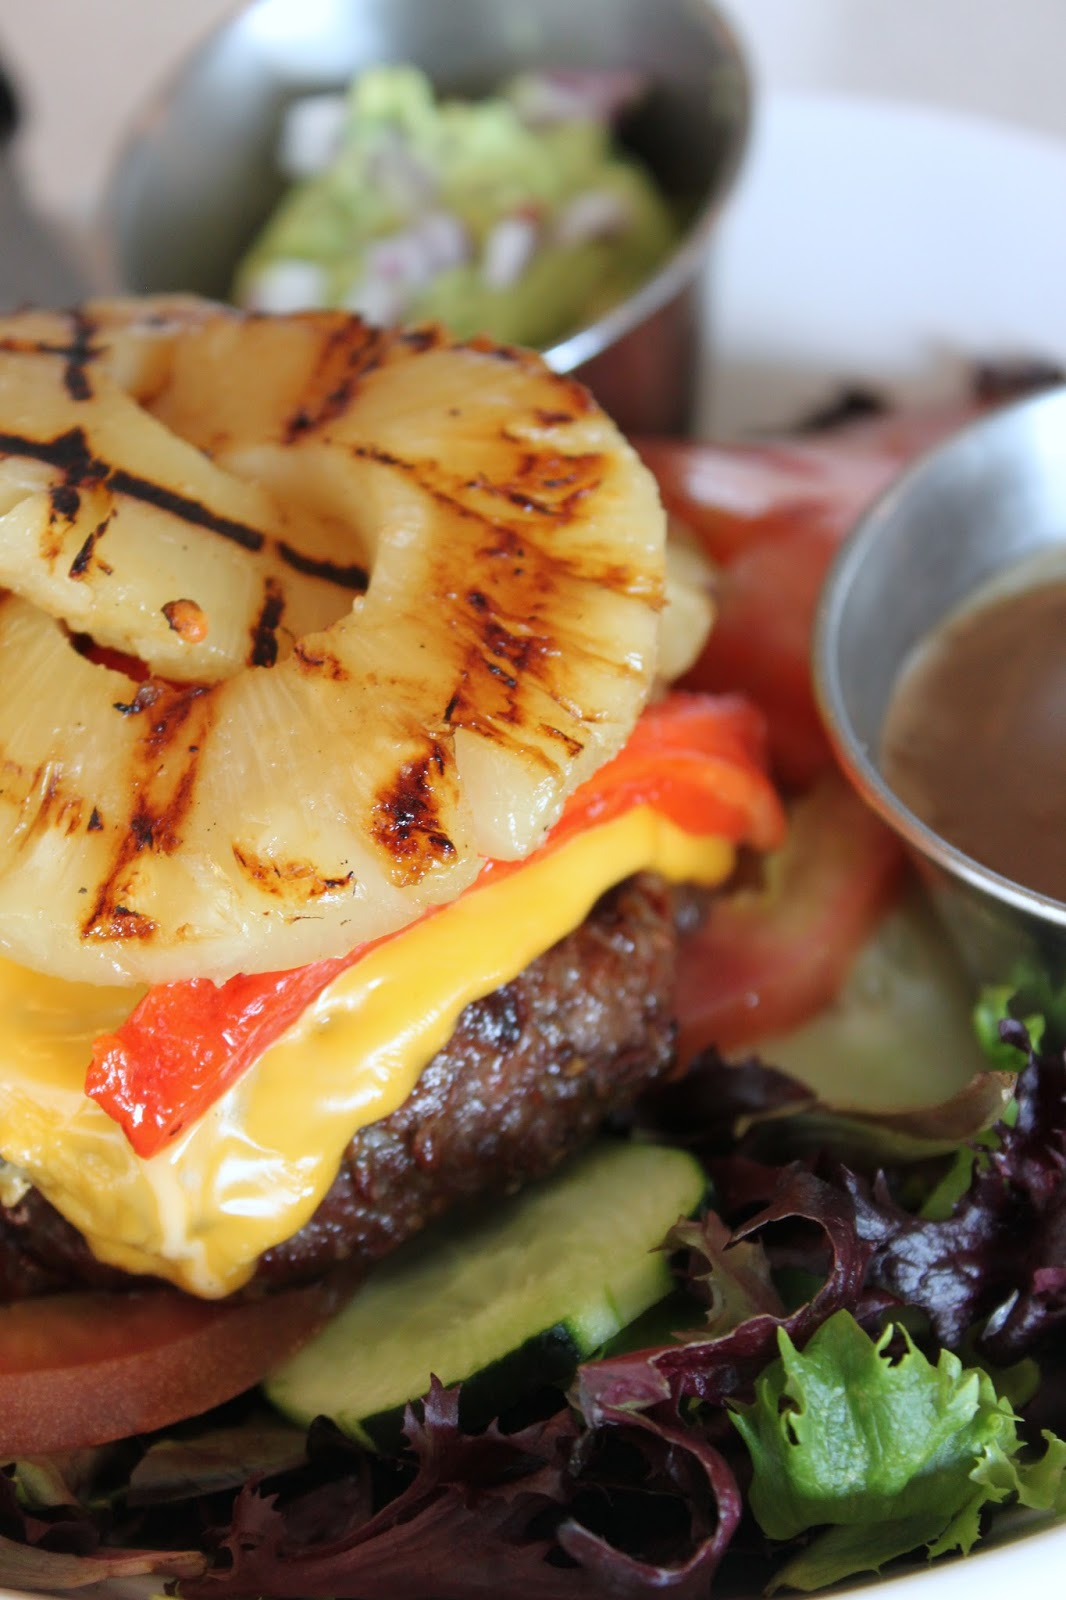 Specialized Burger - Plated Dish - Point of Interest